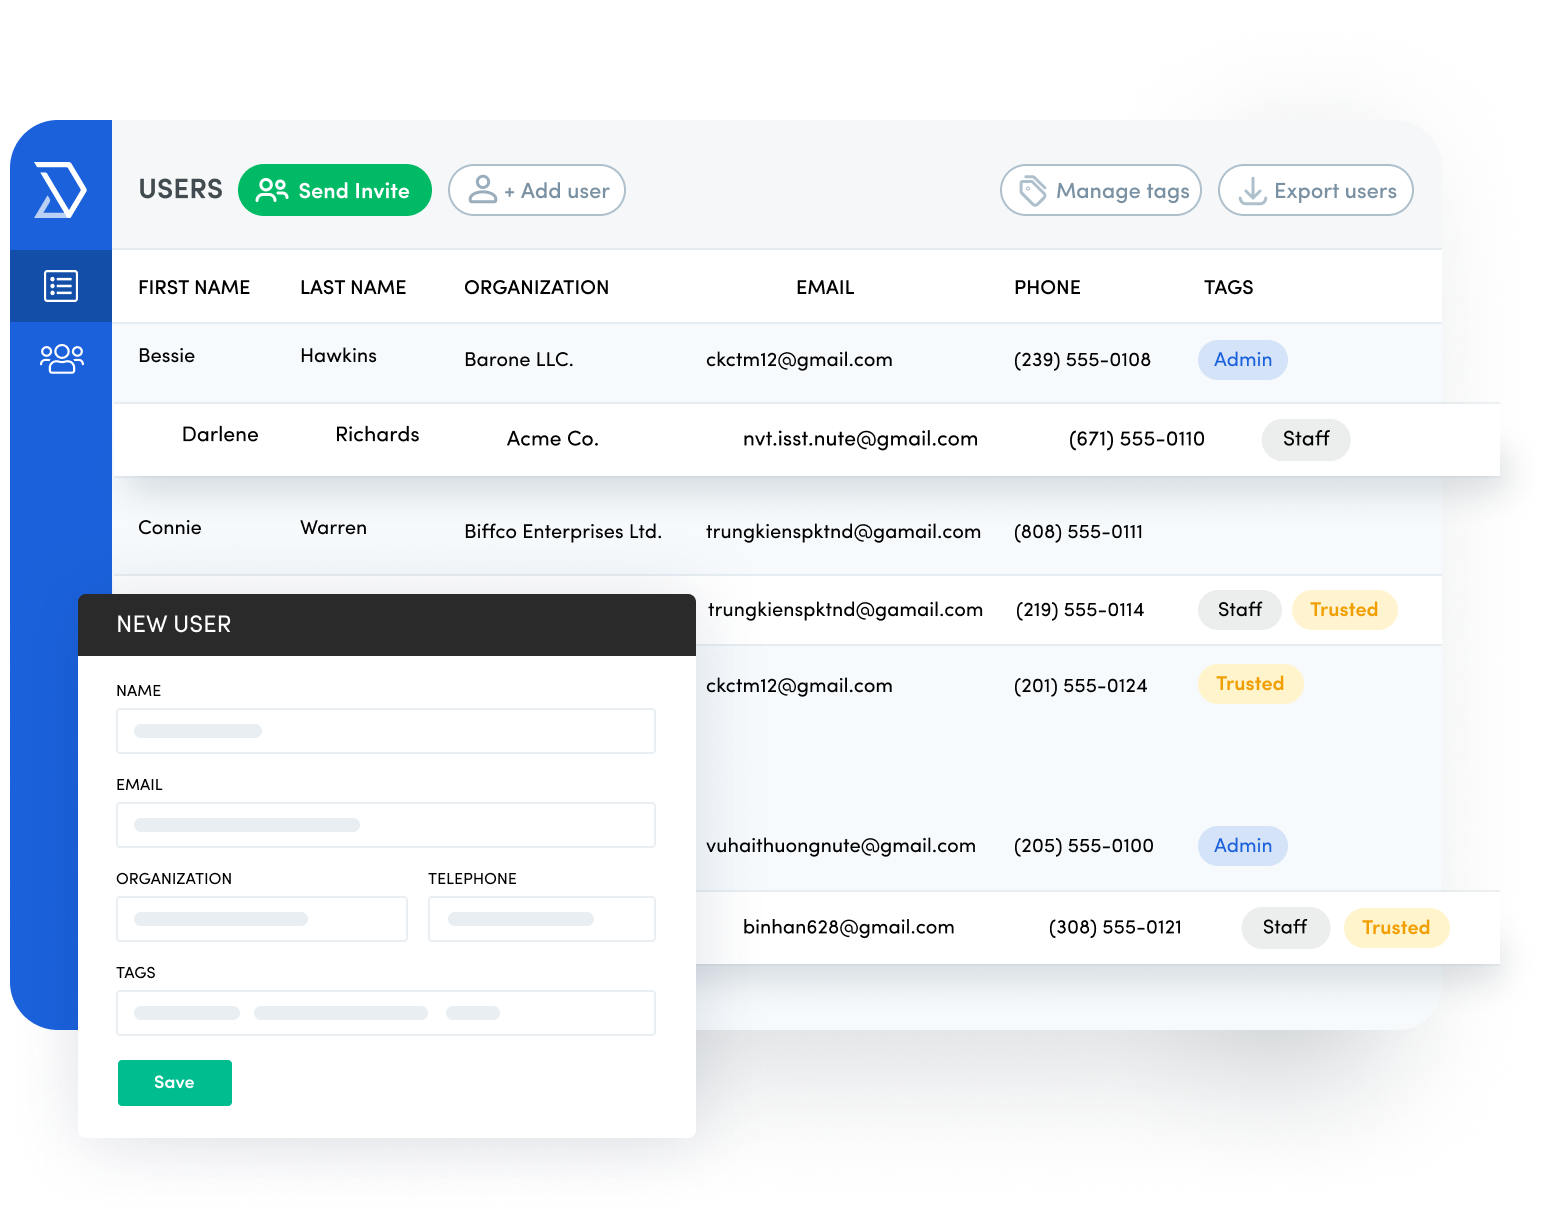 Skedda Software - Easily make decisions regarding how users can book space at your organization with Skedda's user management capabilities.